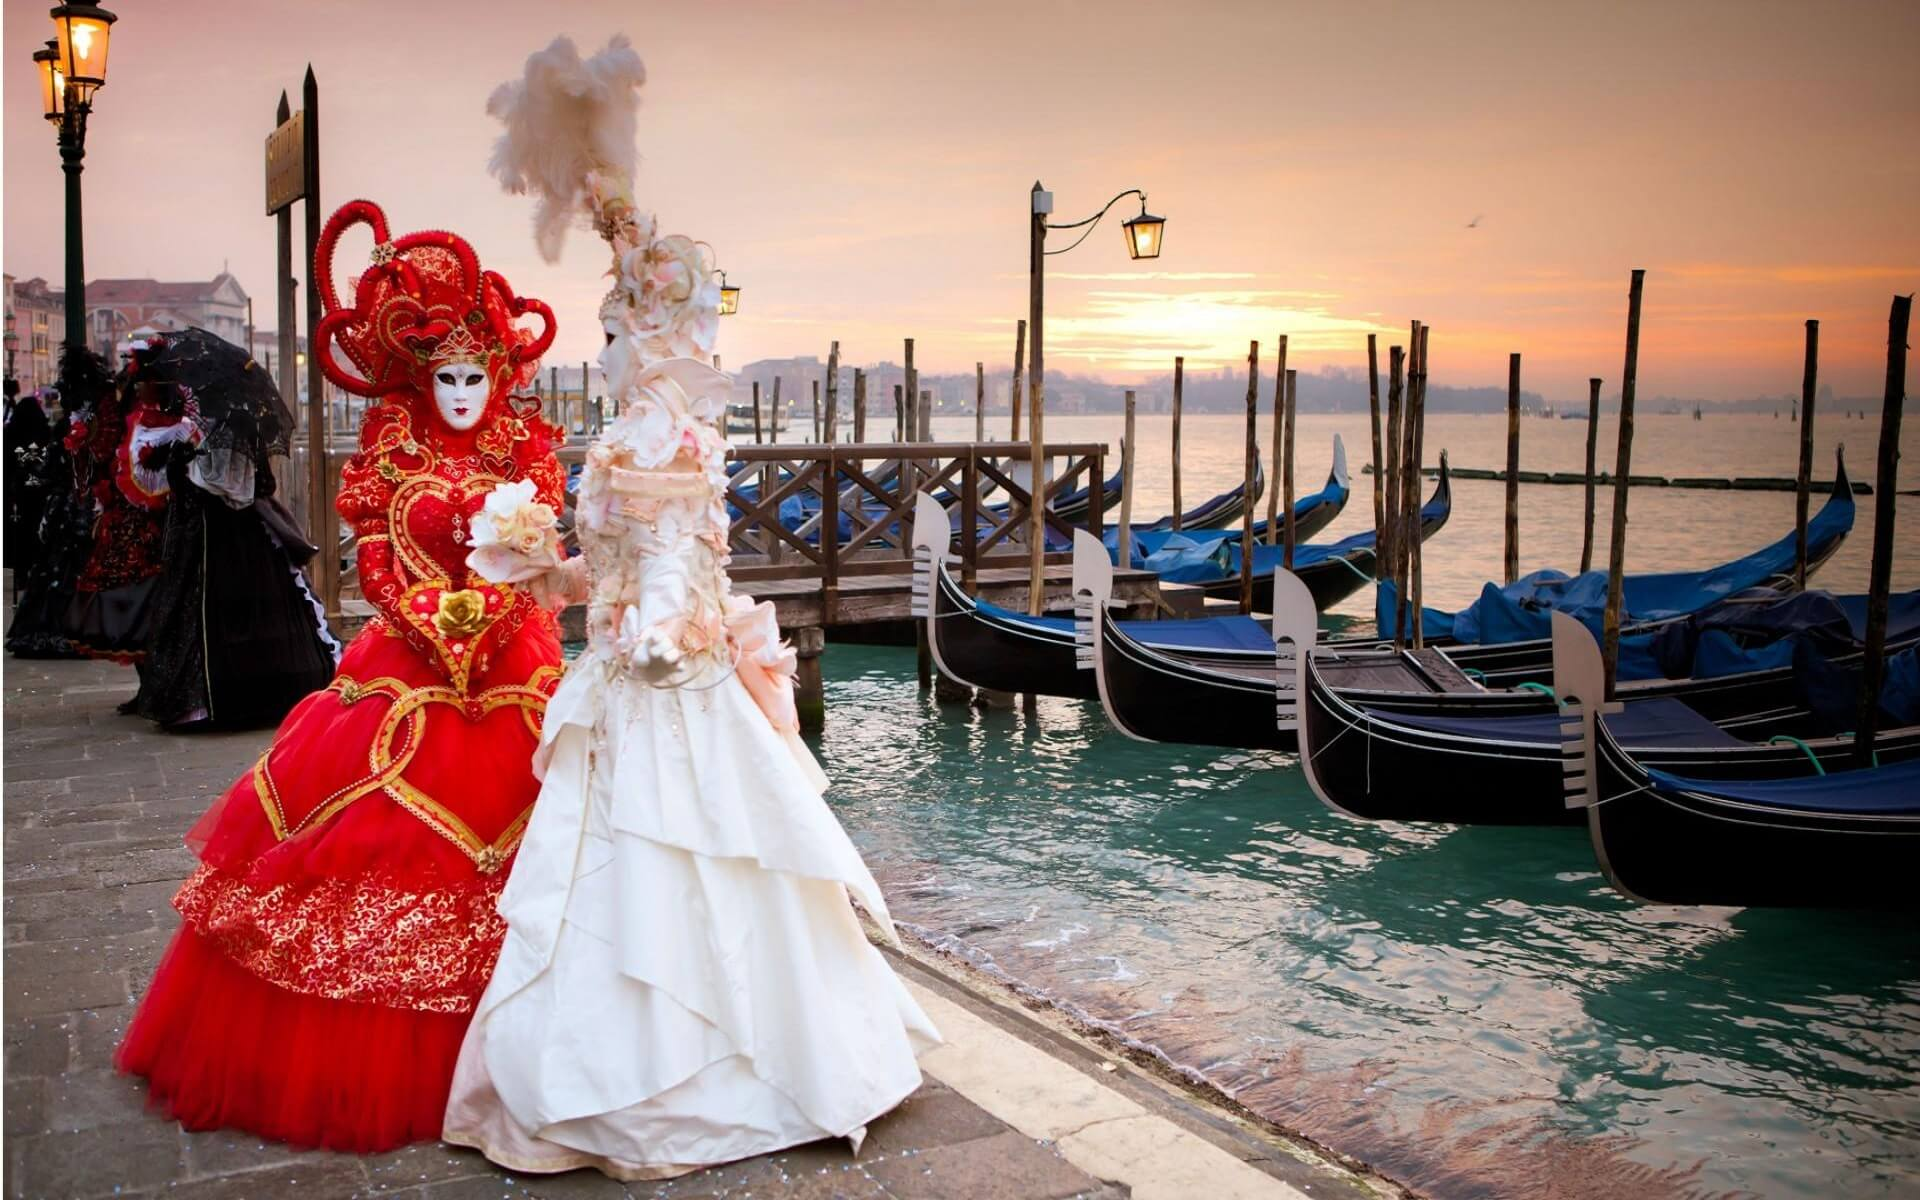 Carnival in Venice, Italy - How to spend the perfect weekend in Venice